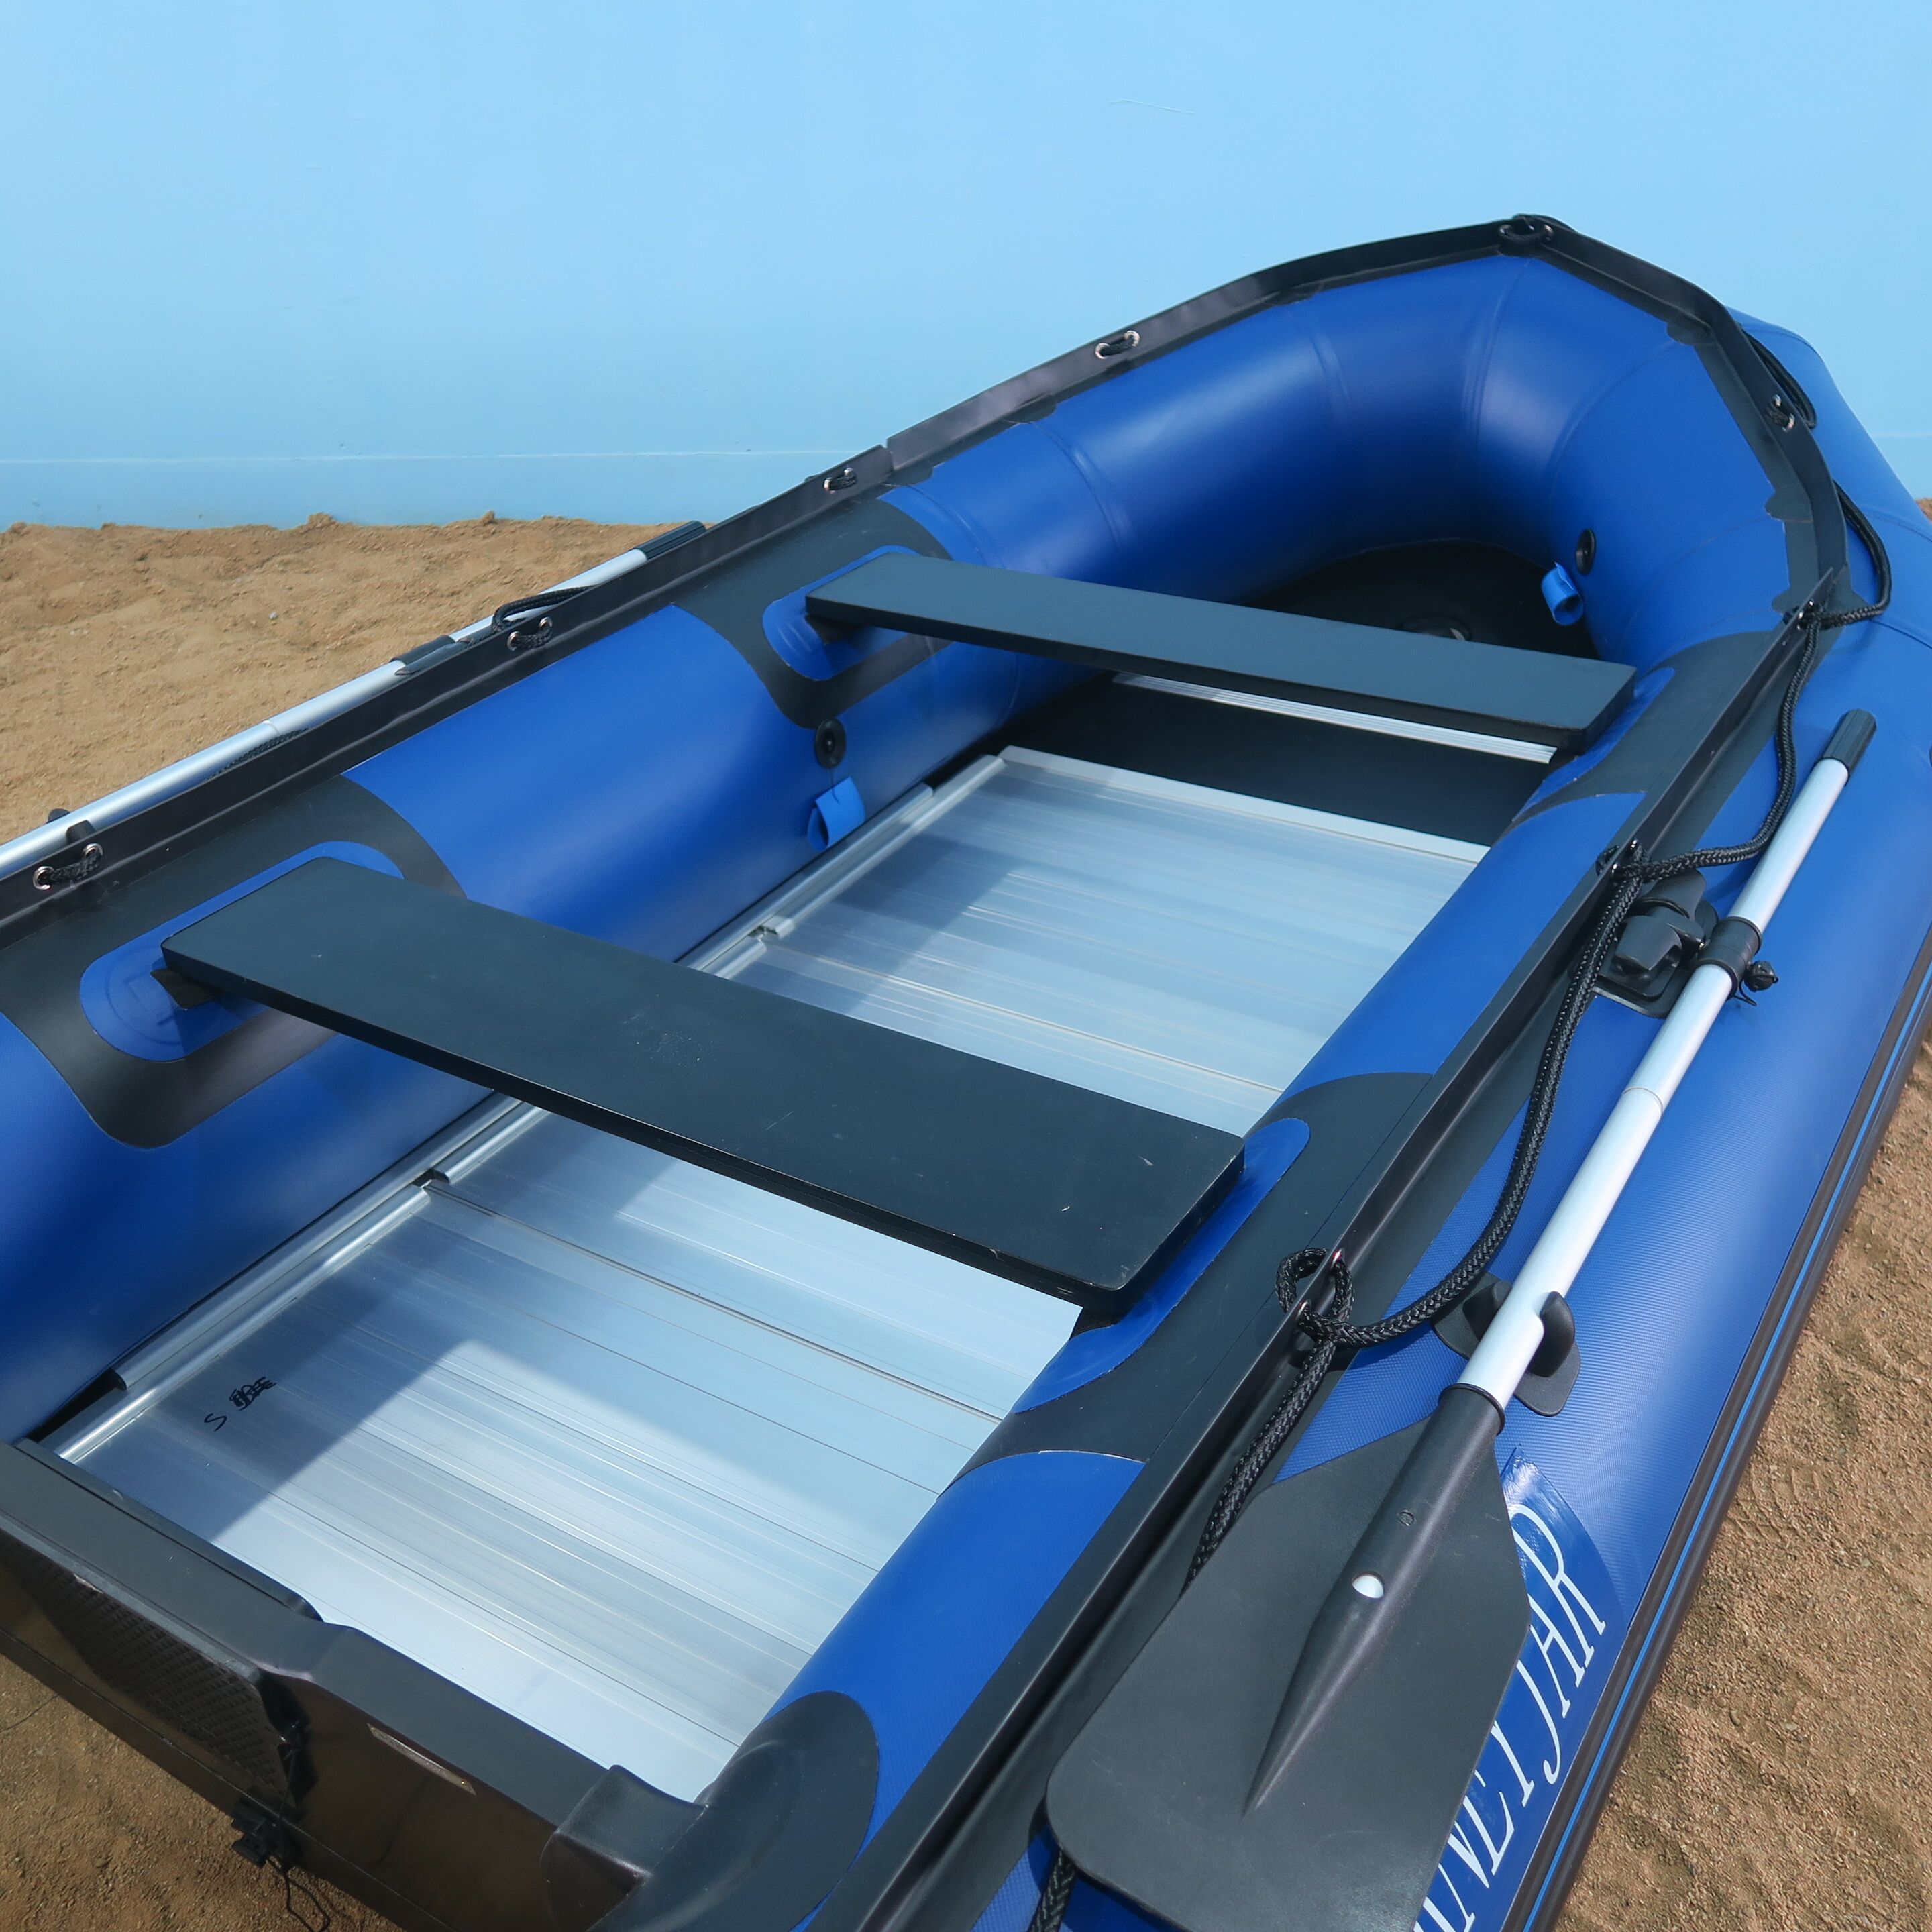 Blue inflatable boat